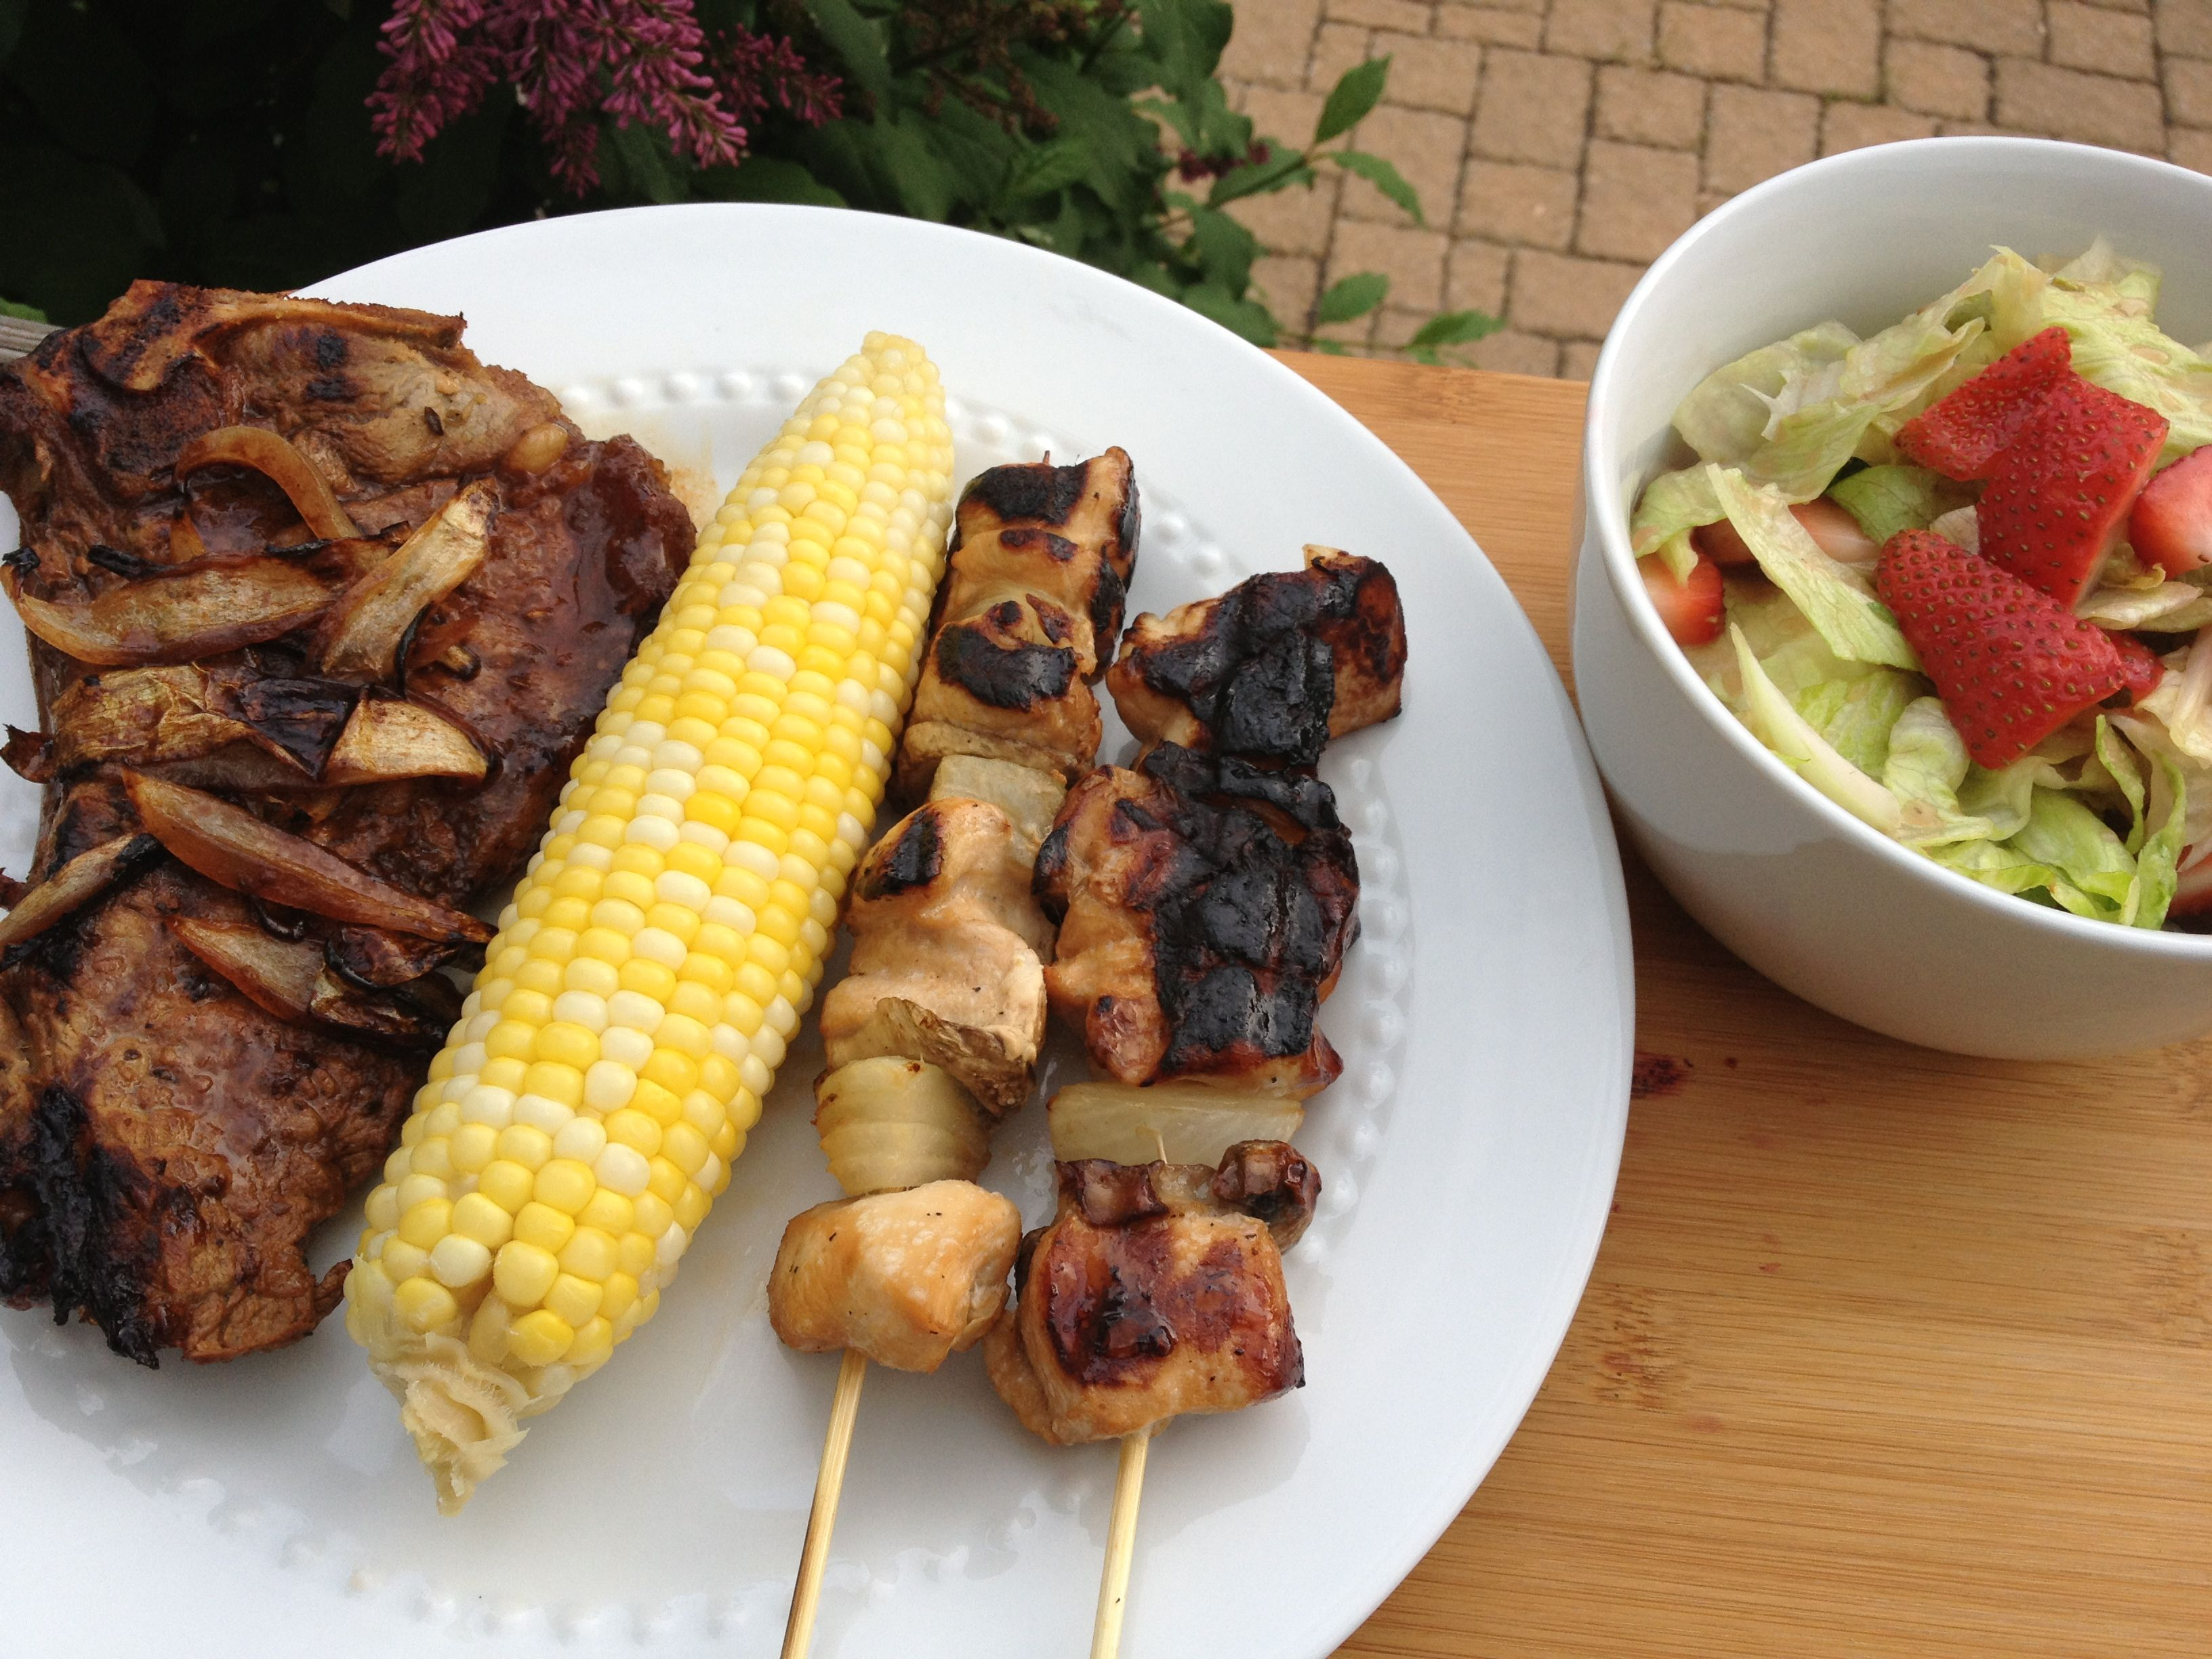 bbq meal